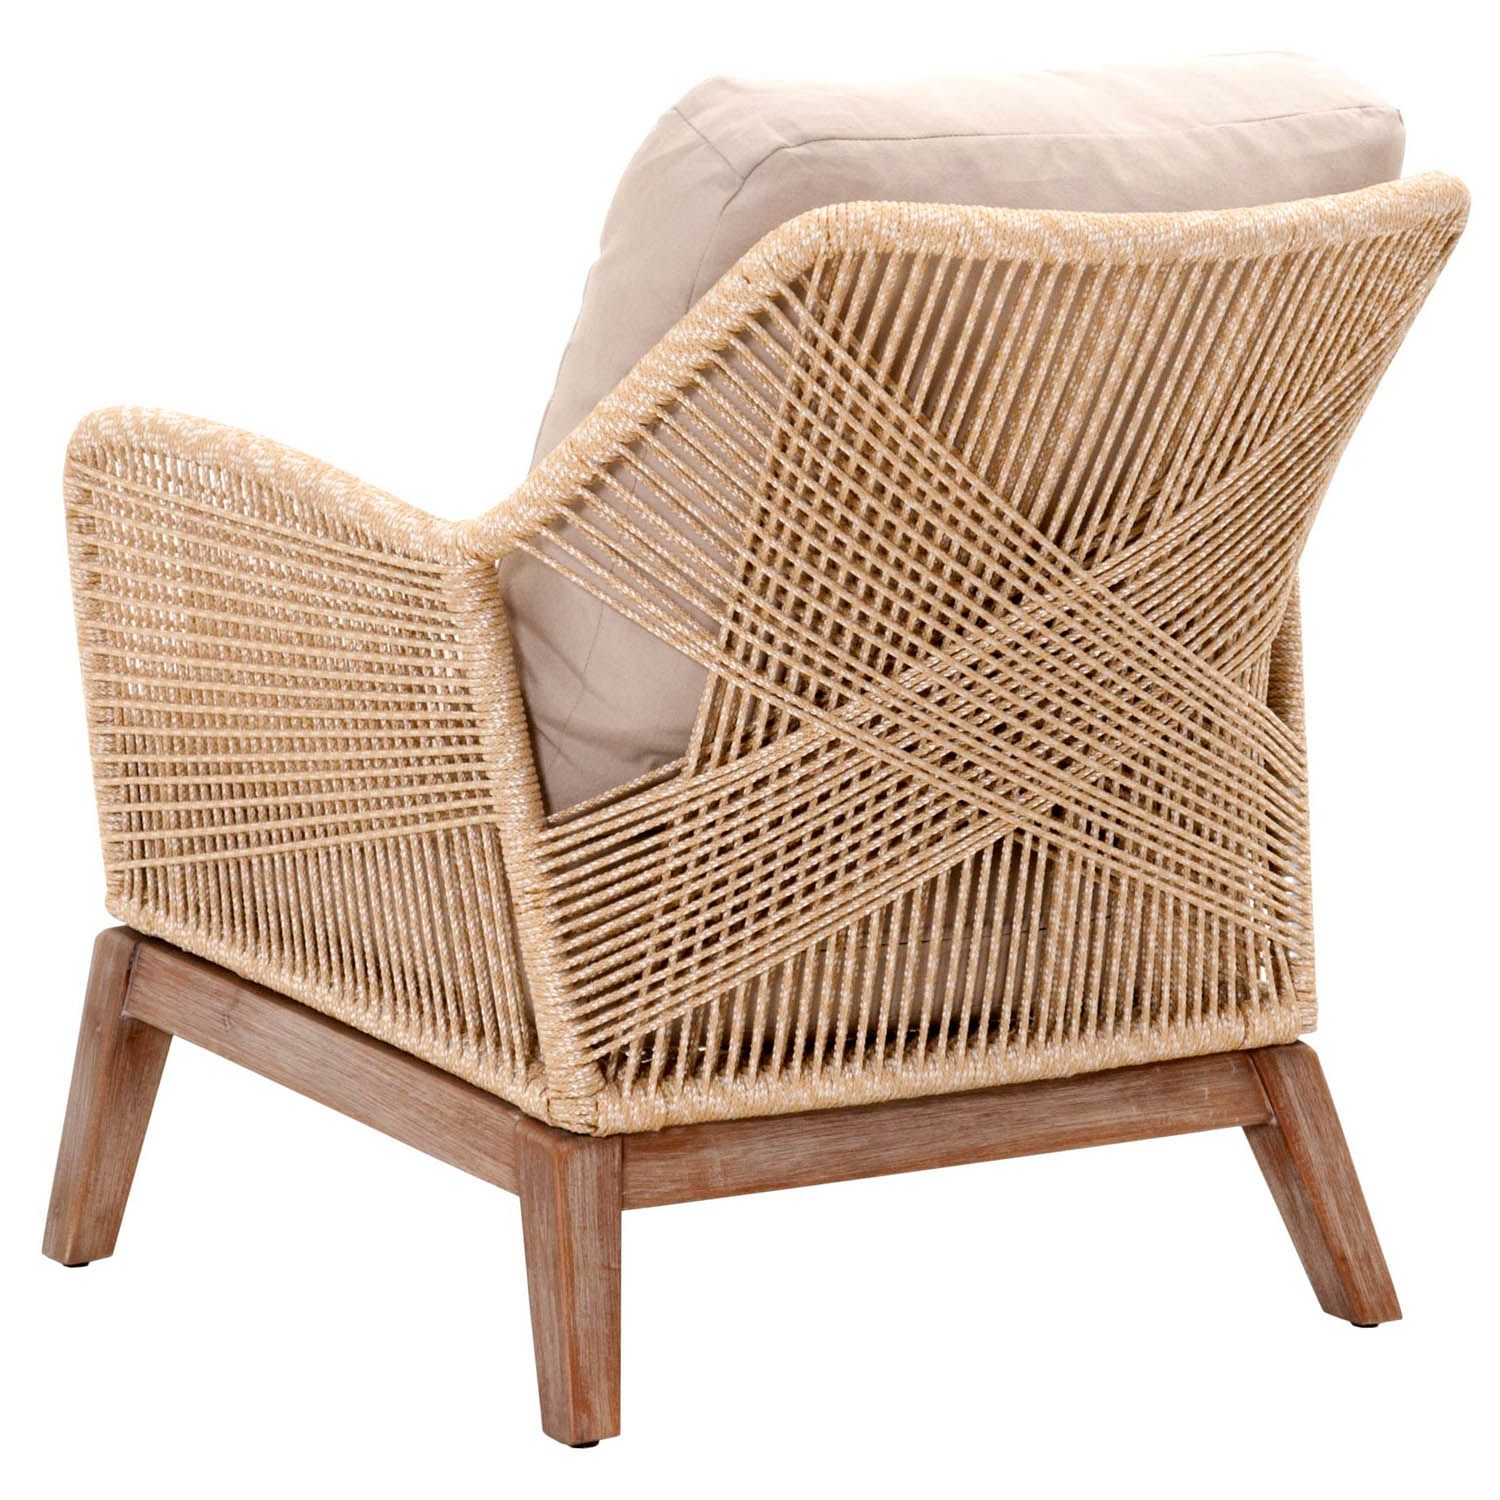 Our Luca Sand Woven Rope Club Chair Features An Intricately Woven Rope Design Adding Flair To Any Outdoor Furniture Cushions Wicker Dining Chairs Club Chairs